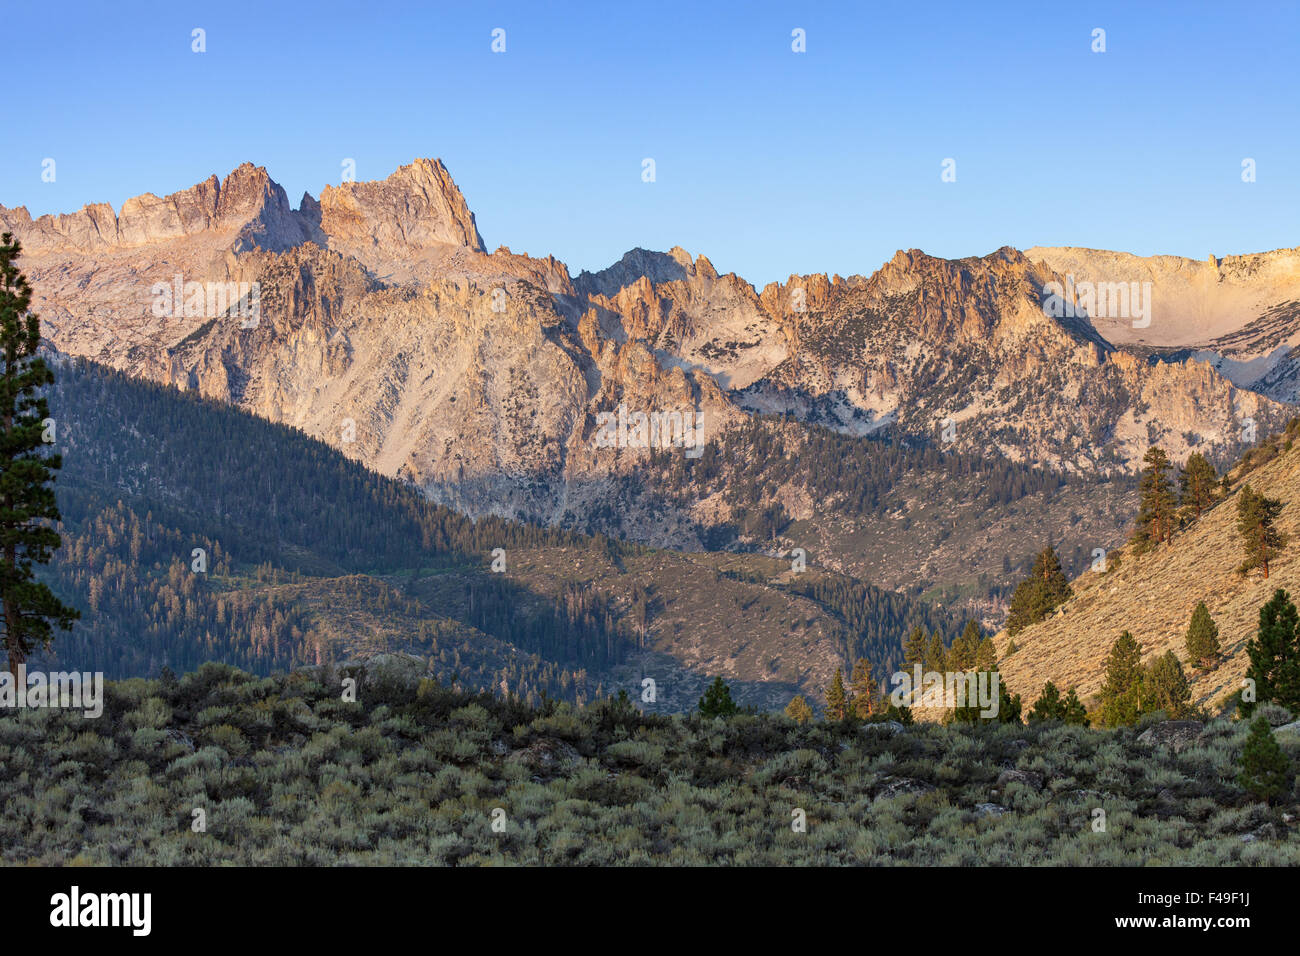 Sierra Nevada Ca: Sierra Nevada Sawtooth Ridge Near Bridgeport, CA And Twin